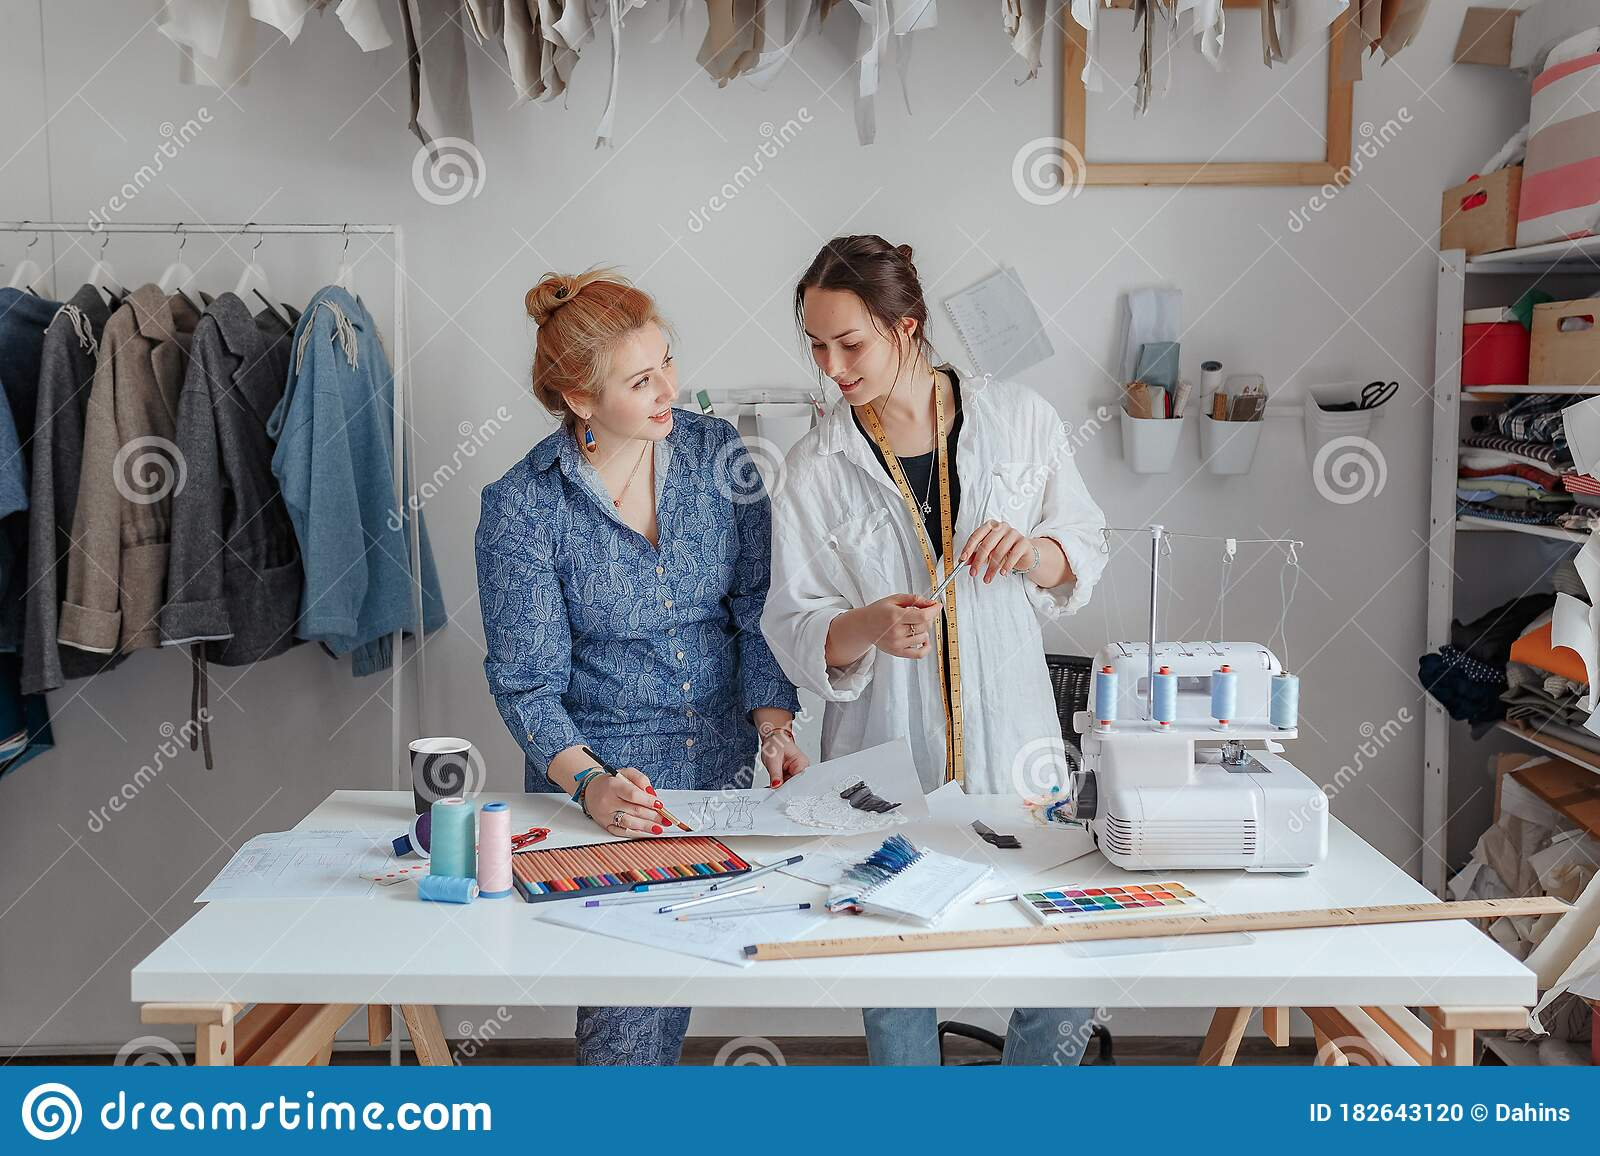 Fashion Designer Sewing Fabrics With Assistant Two Young Designers Work In A Bright Studio Have Opened Their Own Stock Photo Image Of Occupation Skill 182643120